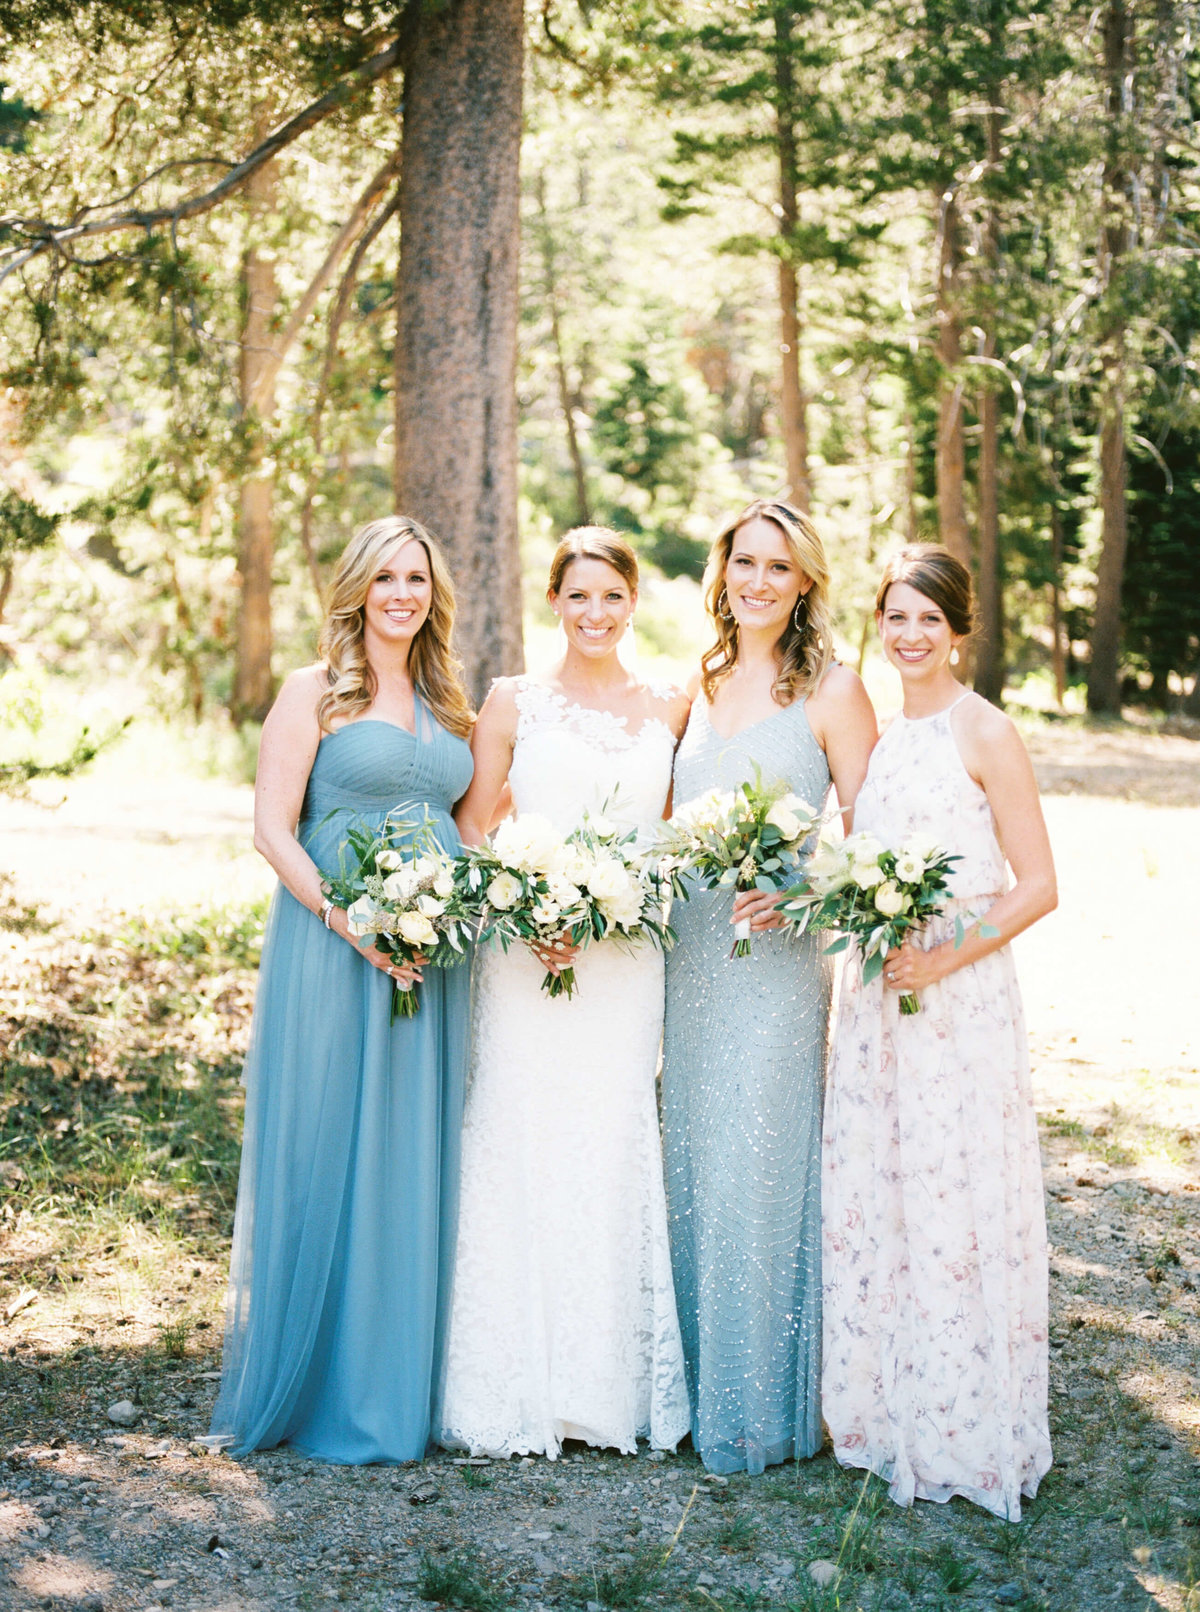 Lake Tahoe Wedding, Destination Wedding Photographer, Henry Photography-20